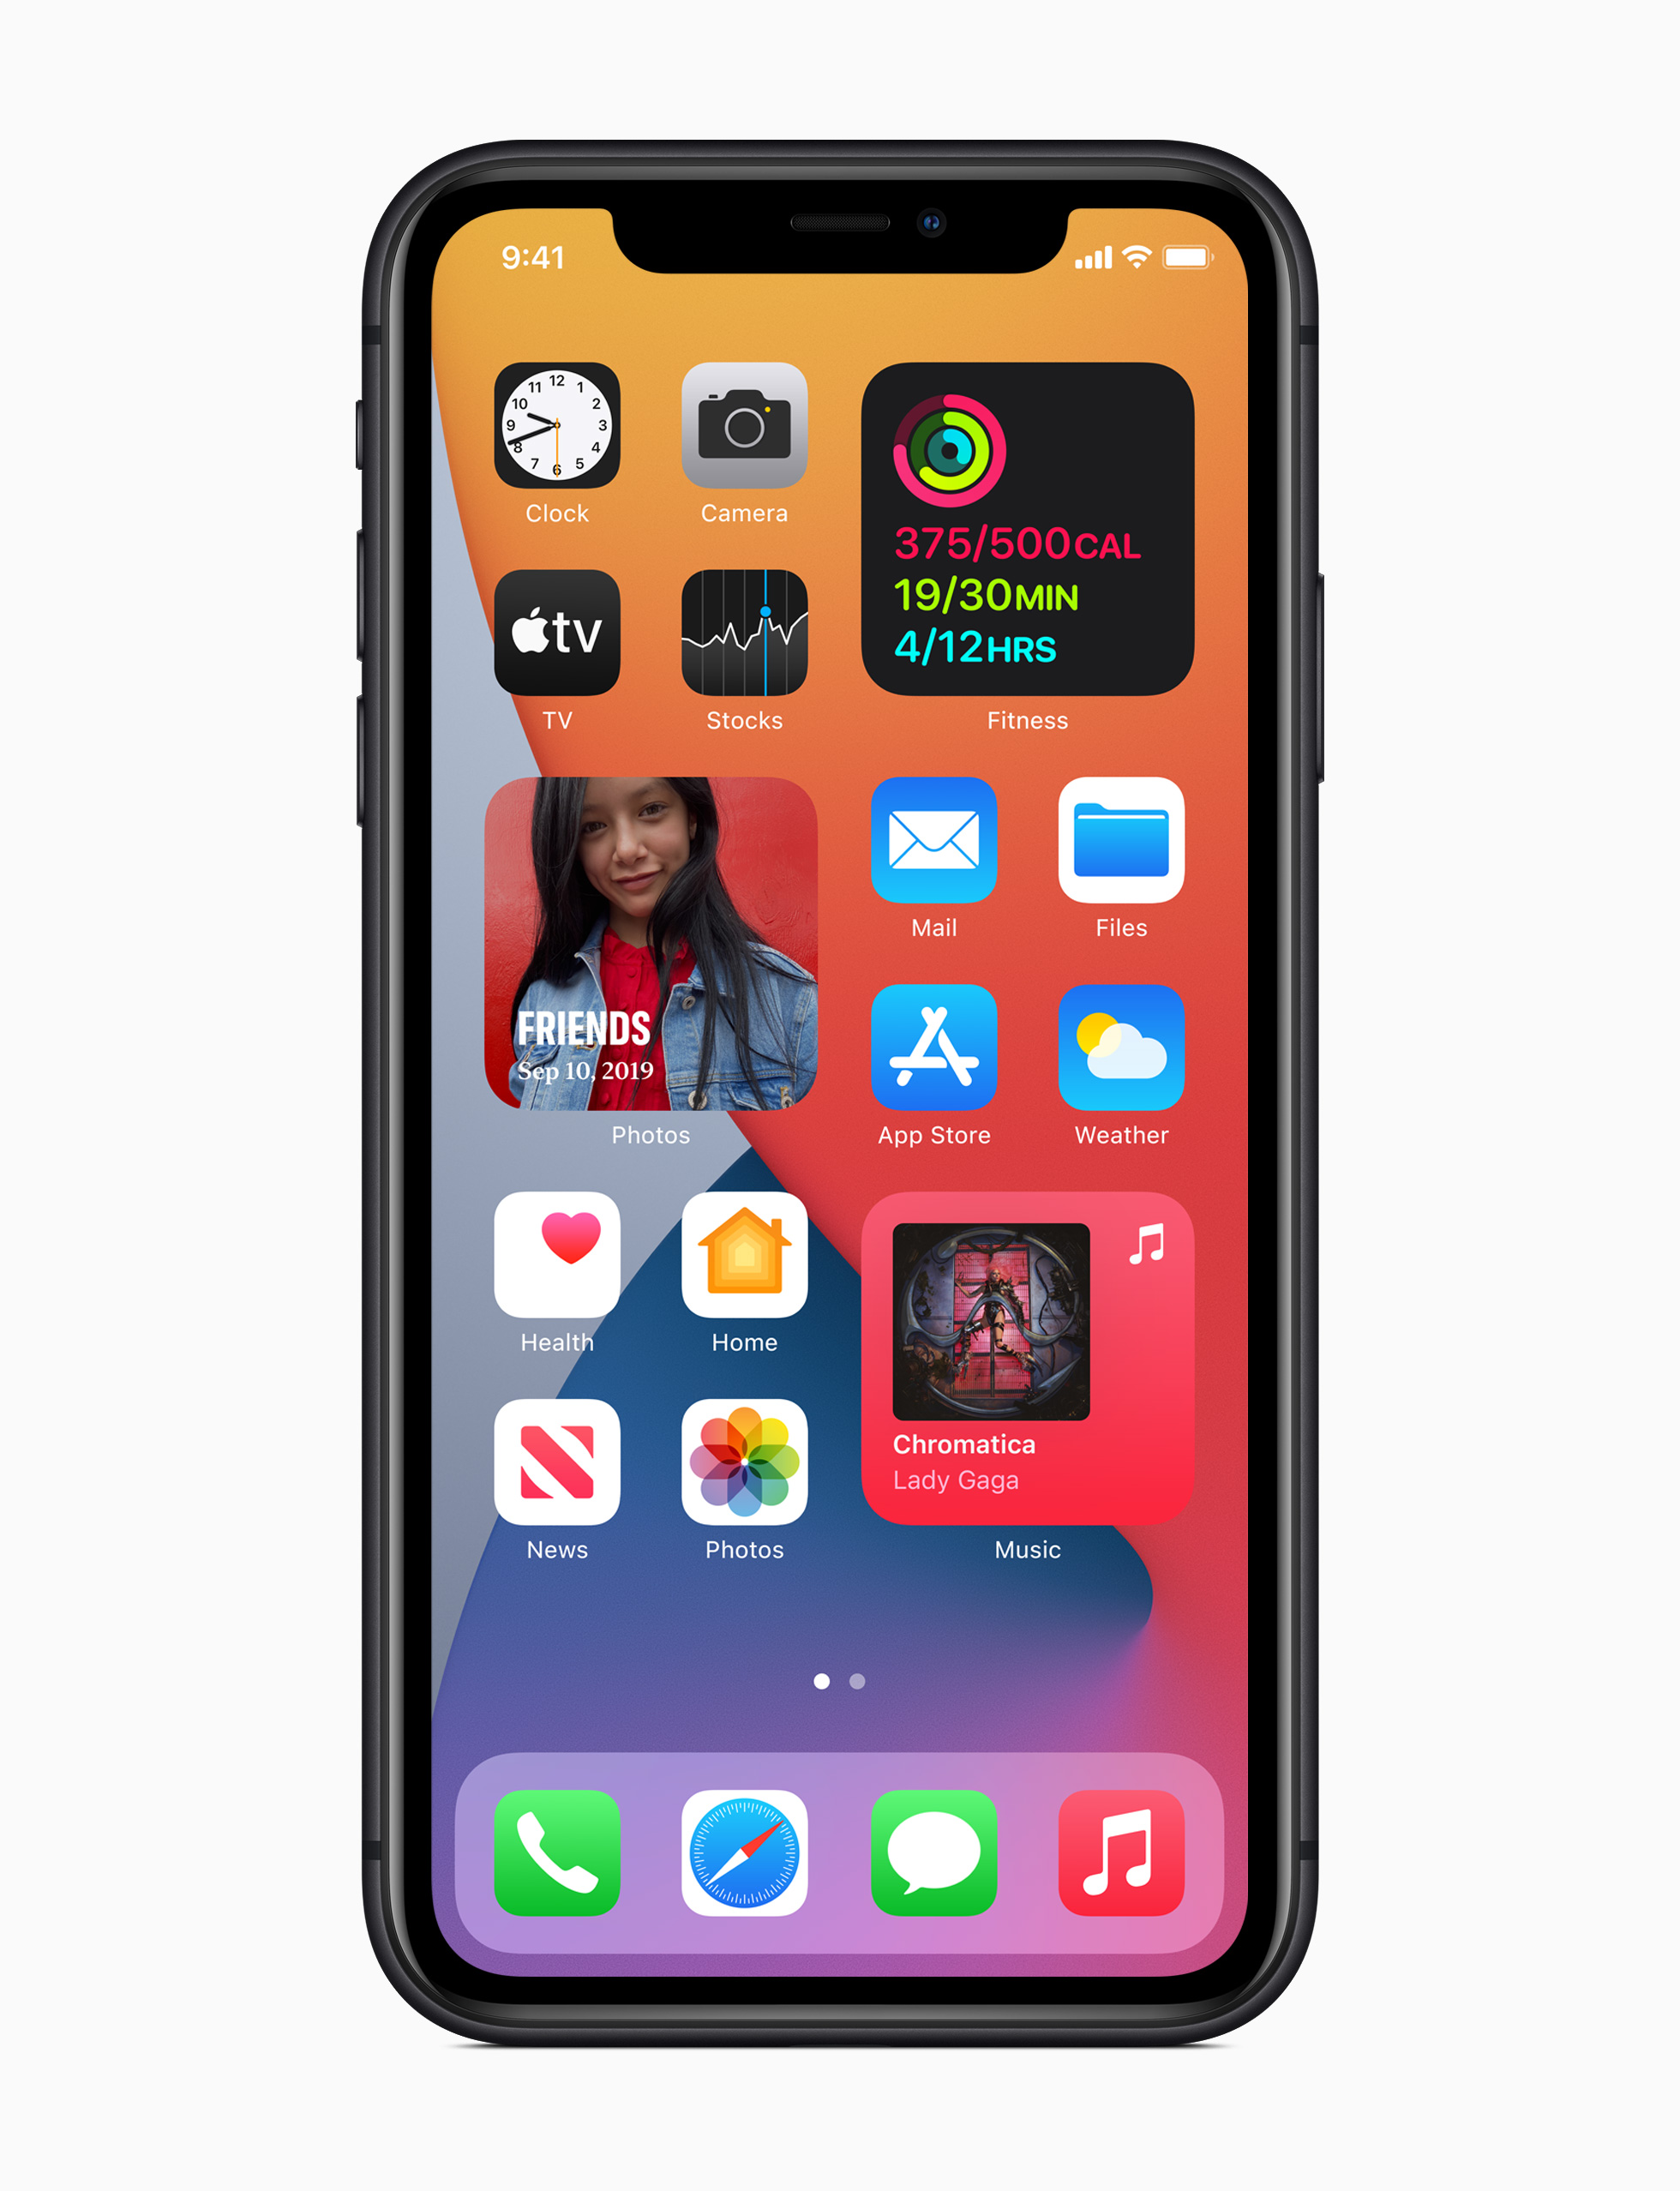 iOS 14 is available today